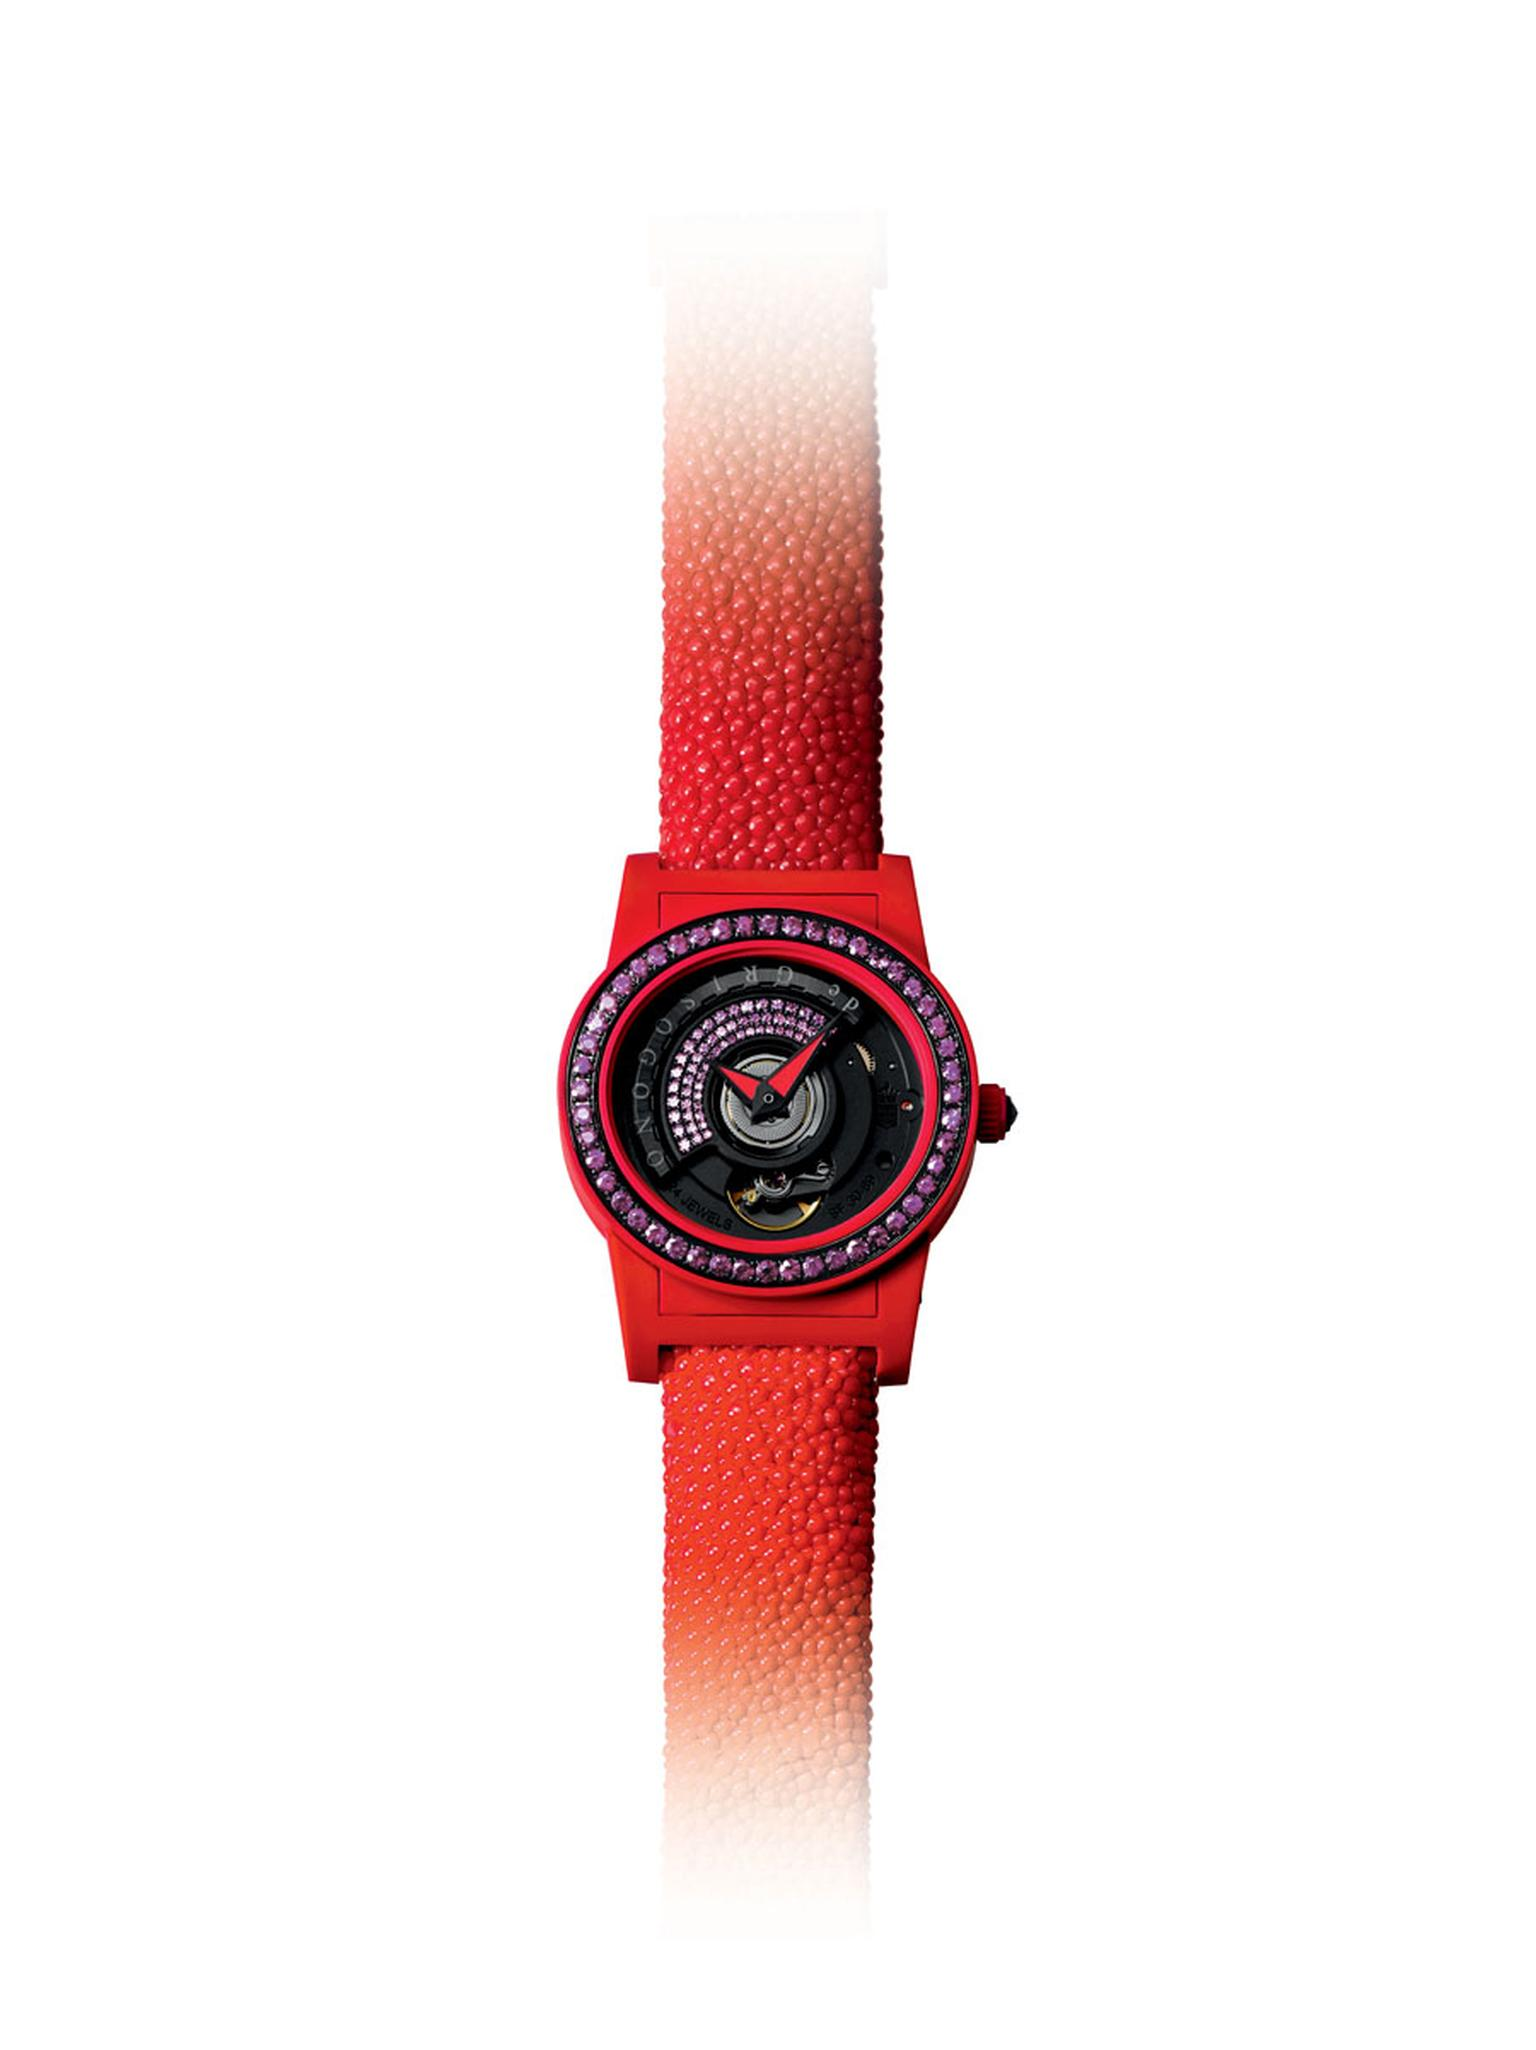 de GRISOGONO's 'Tondo by Night' watch in warm, glowing red.